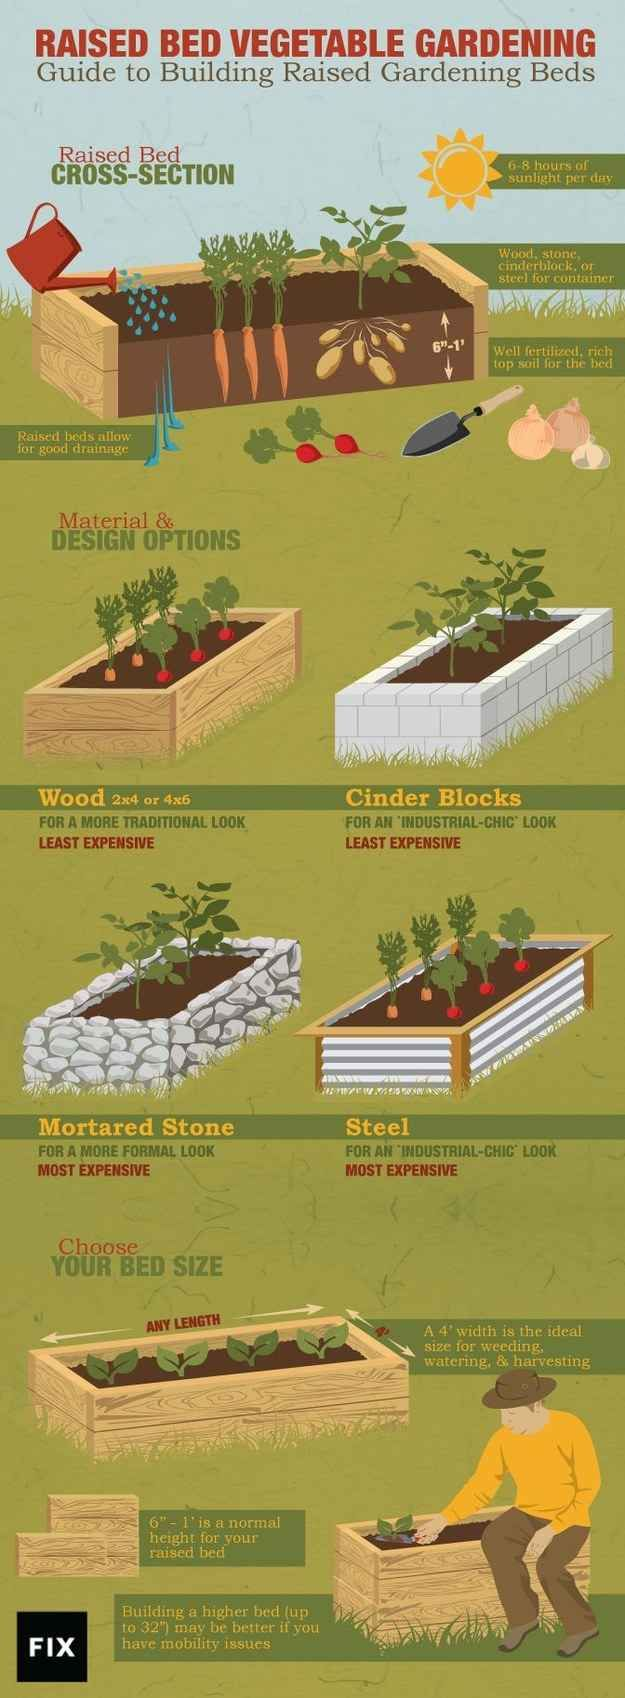 How To Build Raised Garden Beds. Gardening In Raised Beds. Vegetable  Gardening With Raised Beds.